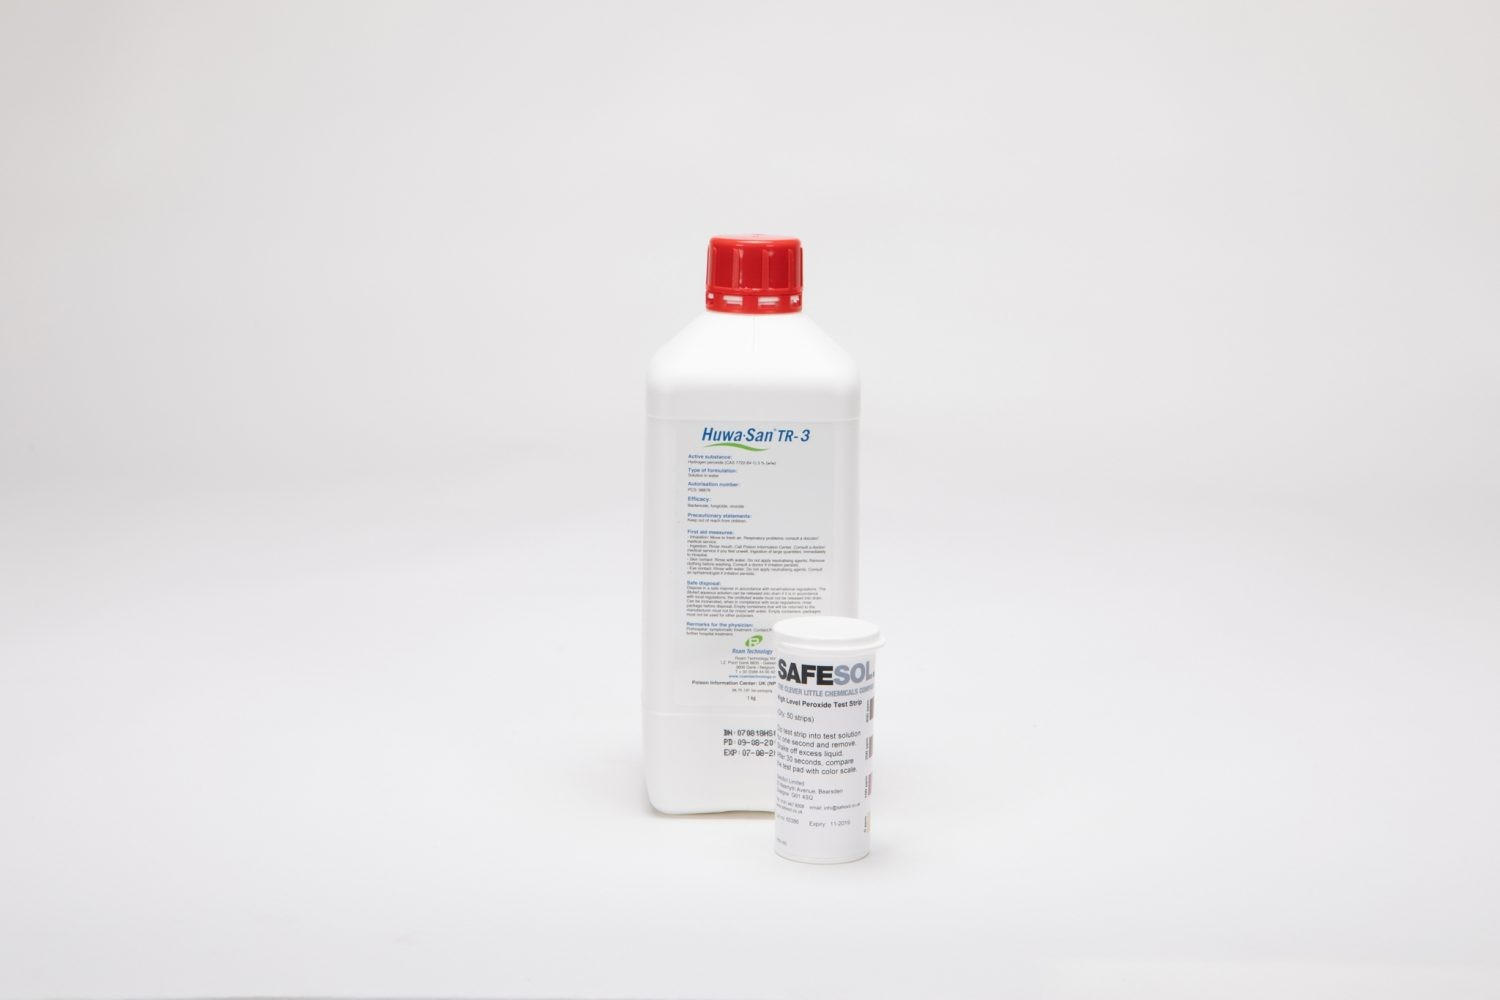 HuwaSan TR3 (Previously EndoSan3) (1 litre) 3% Silver Stabilised Hydrogen  Peroxide Eco-friendly disinfectant